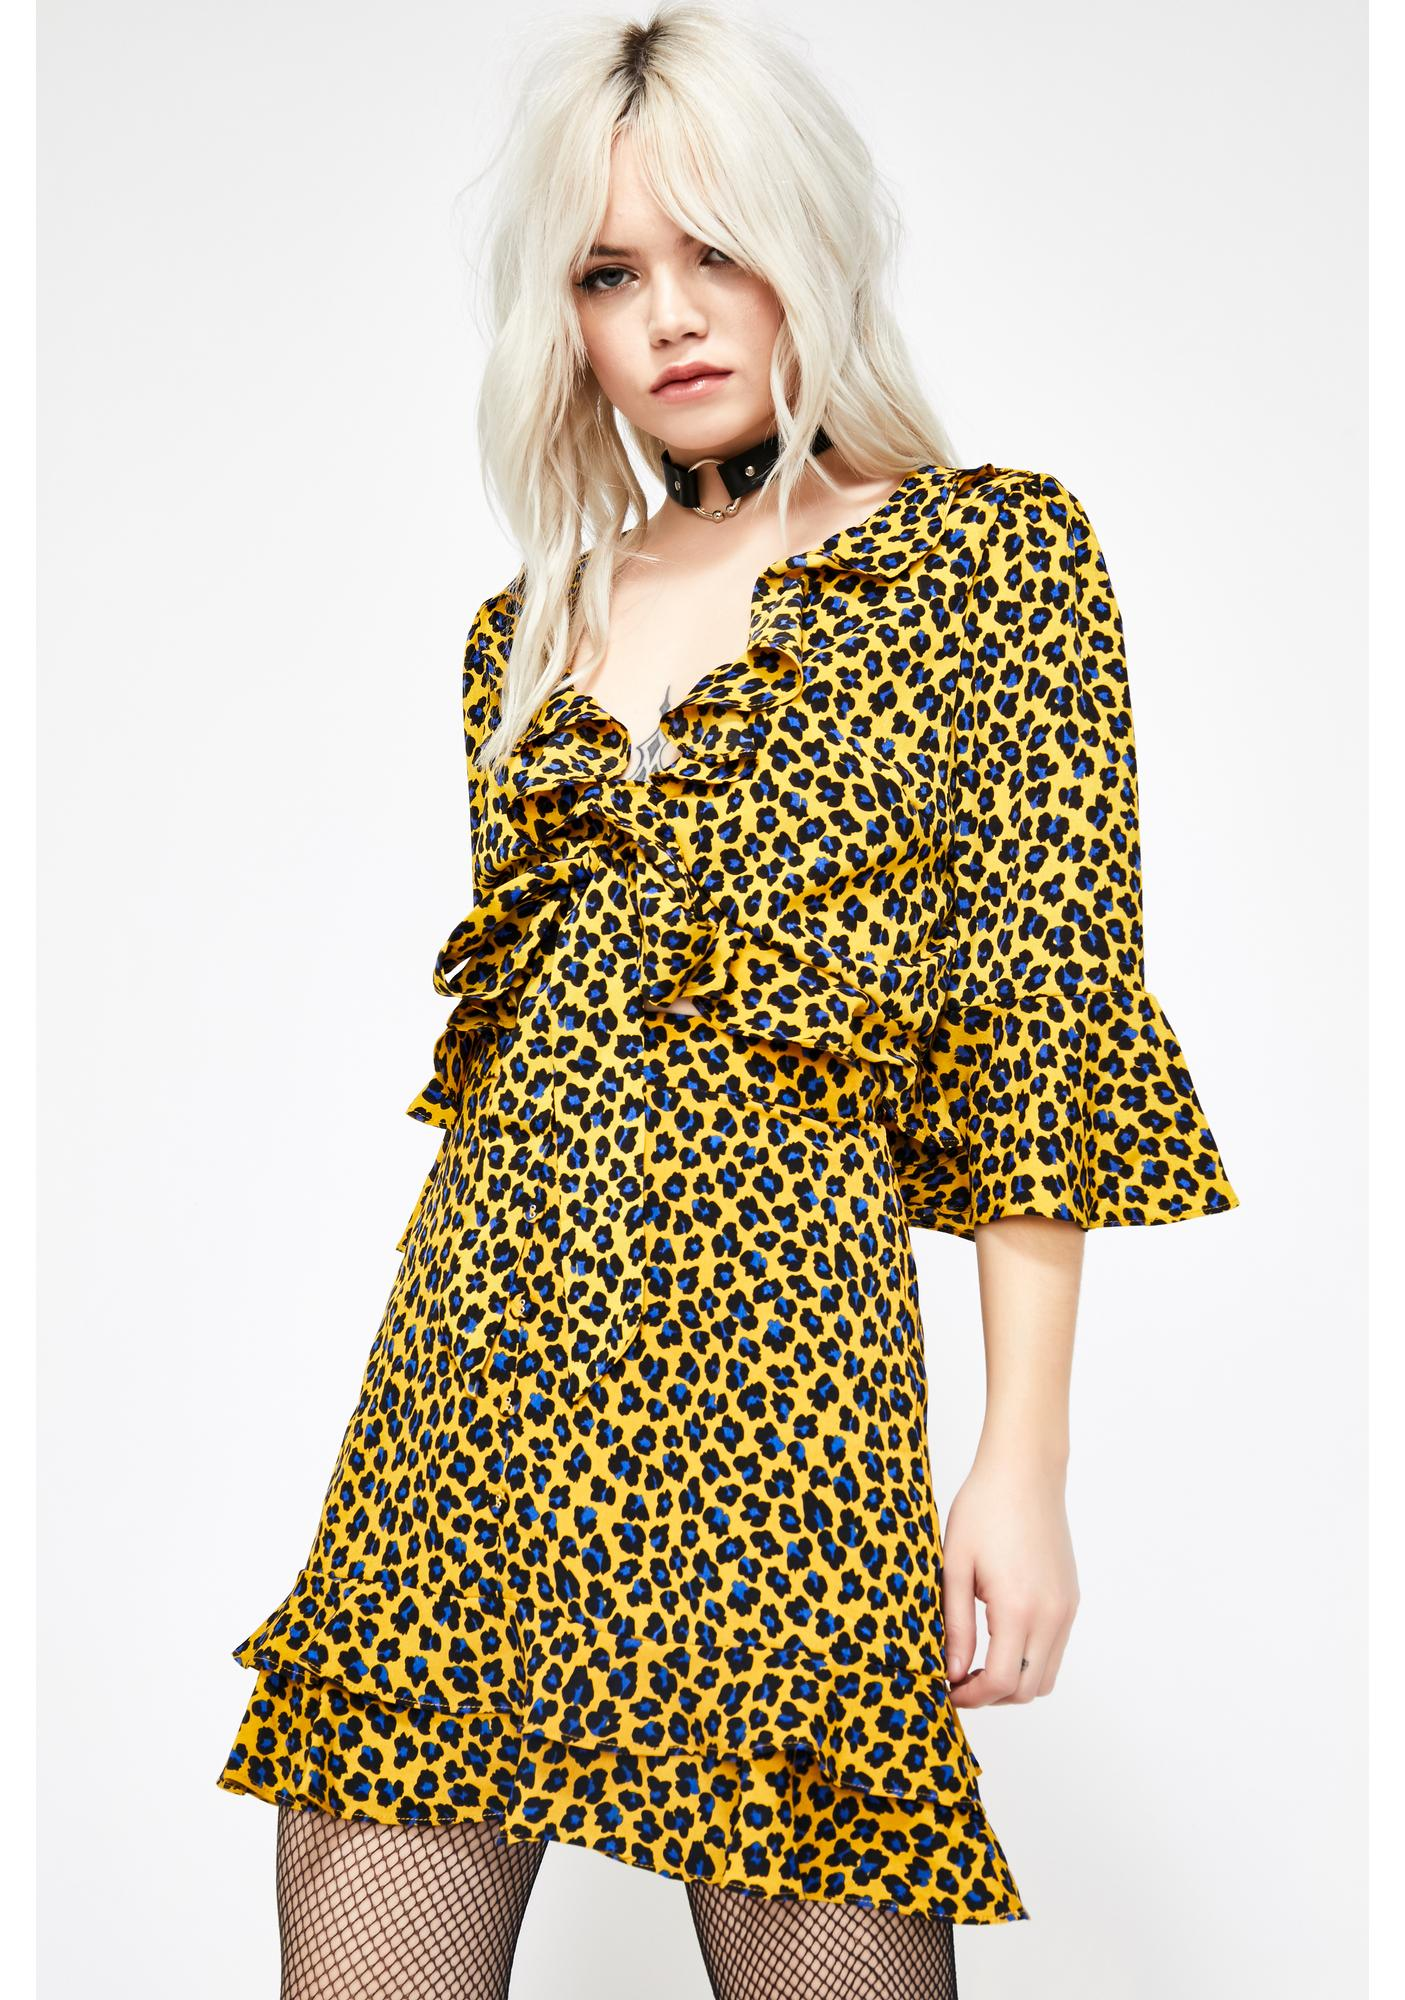 Cute N' Catty Leopard Blouse